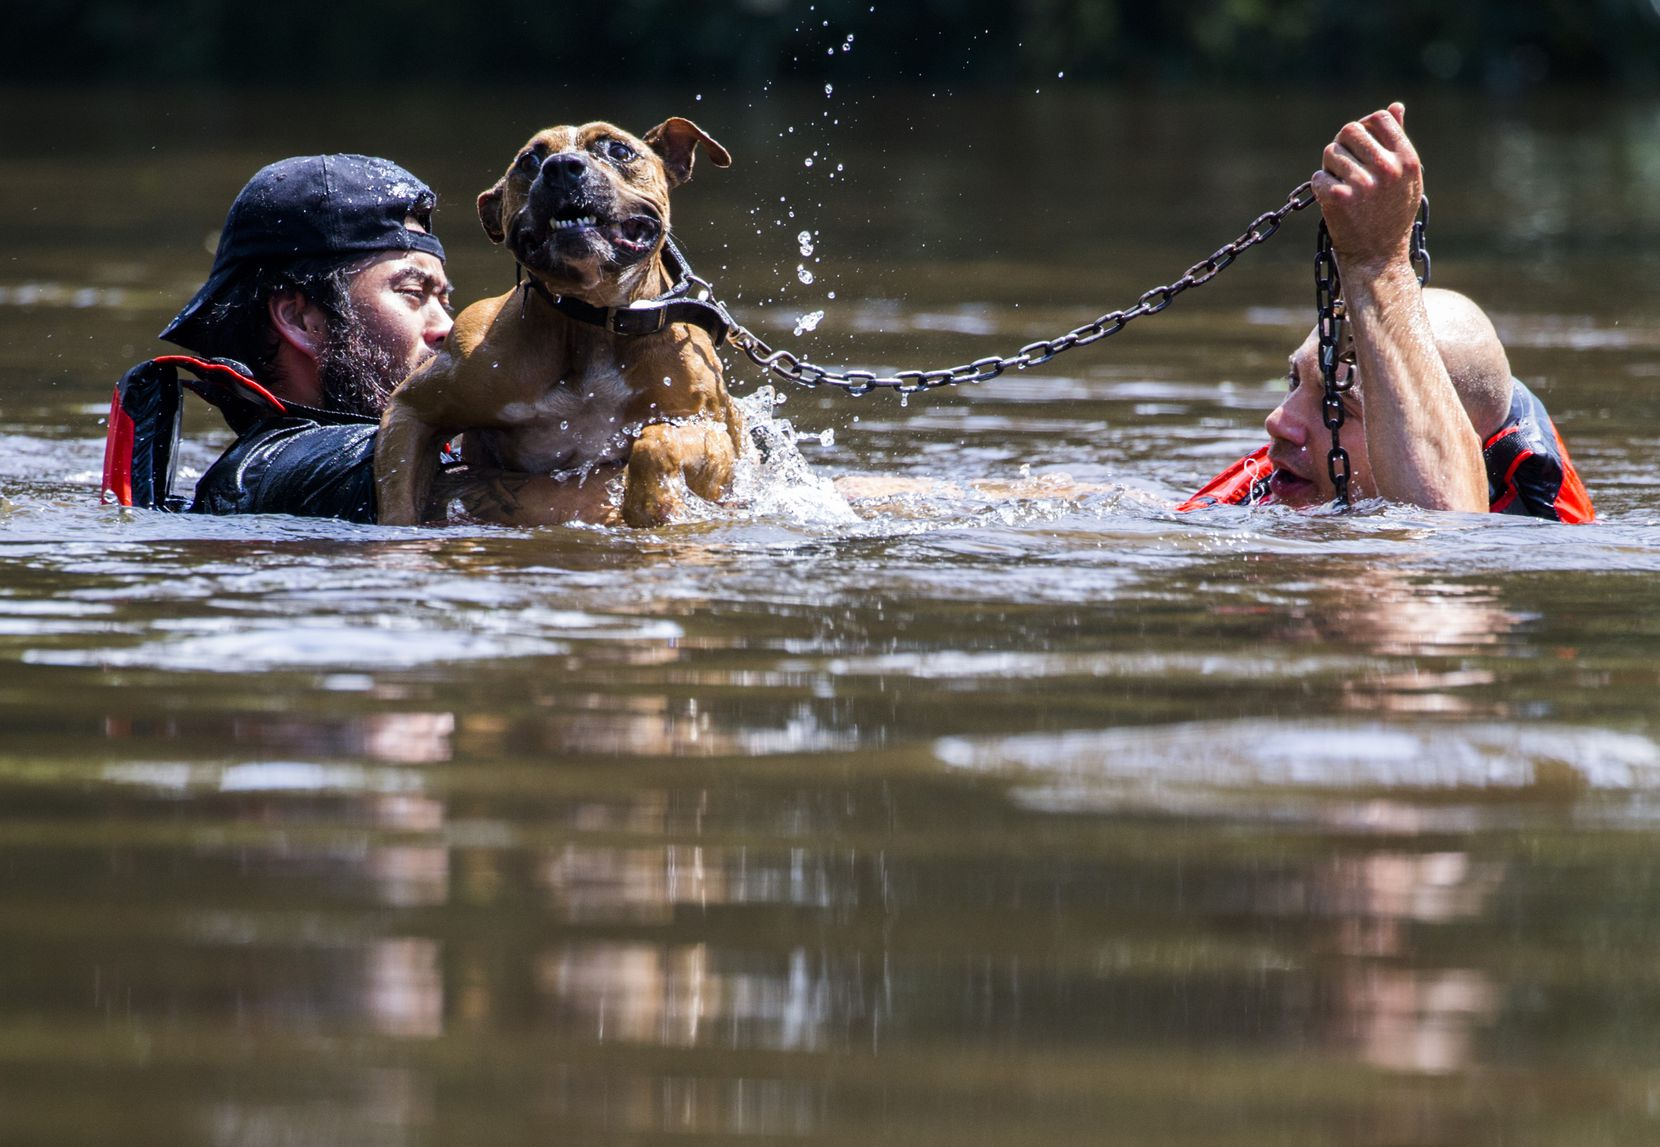 Marine Corps League member Jeff Webb, left, of Montgomery, Texas, and rescue diver Stephan Bradshaw, right, of South Carolina rescue a dog that was chained to a flooded porch as a result of Tropical Storm Harvey on Thursday, August 31, 2017 in Lumberton, Texas.